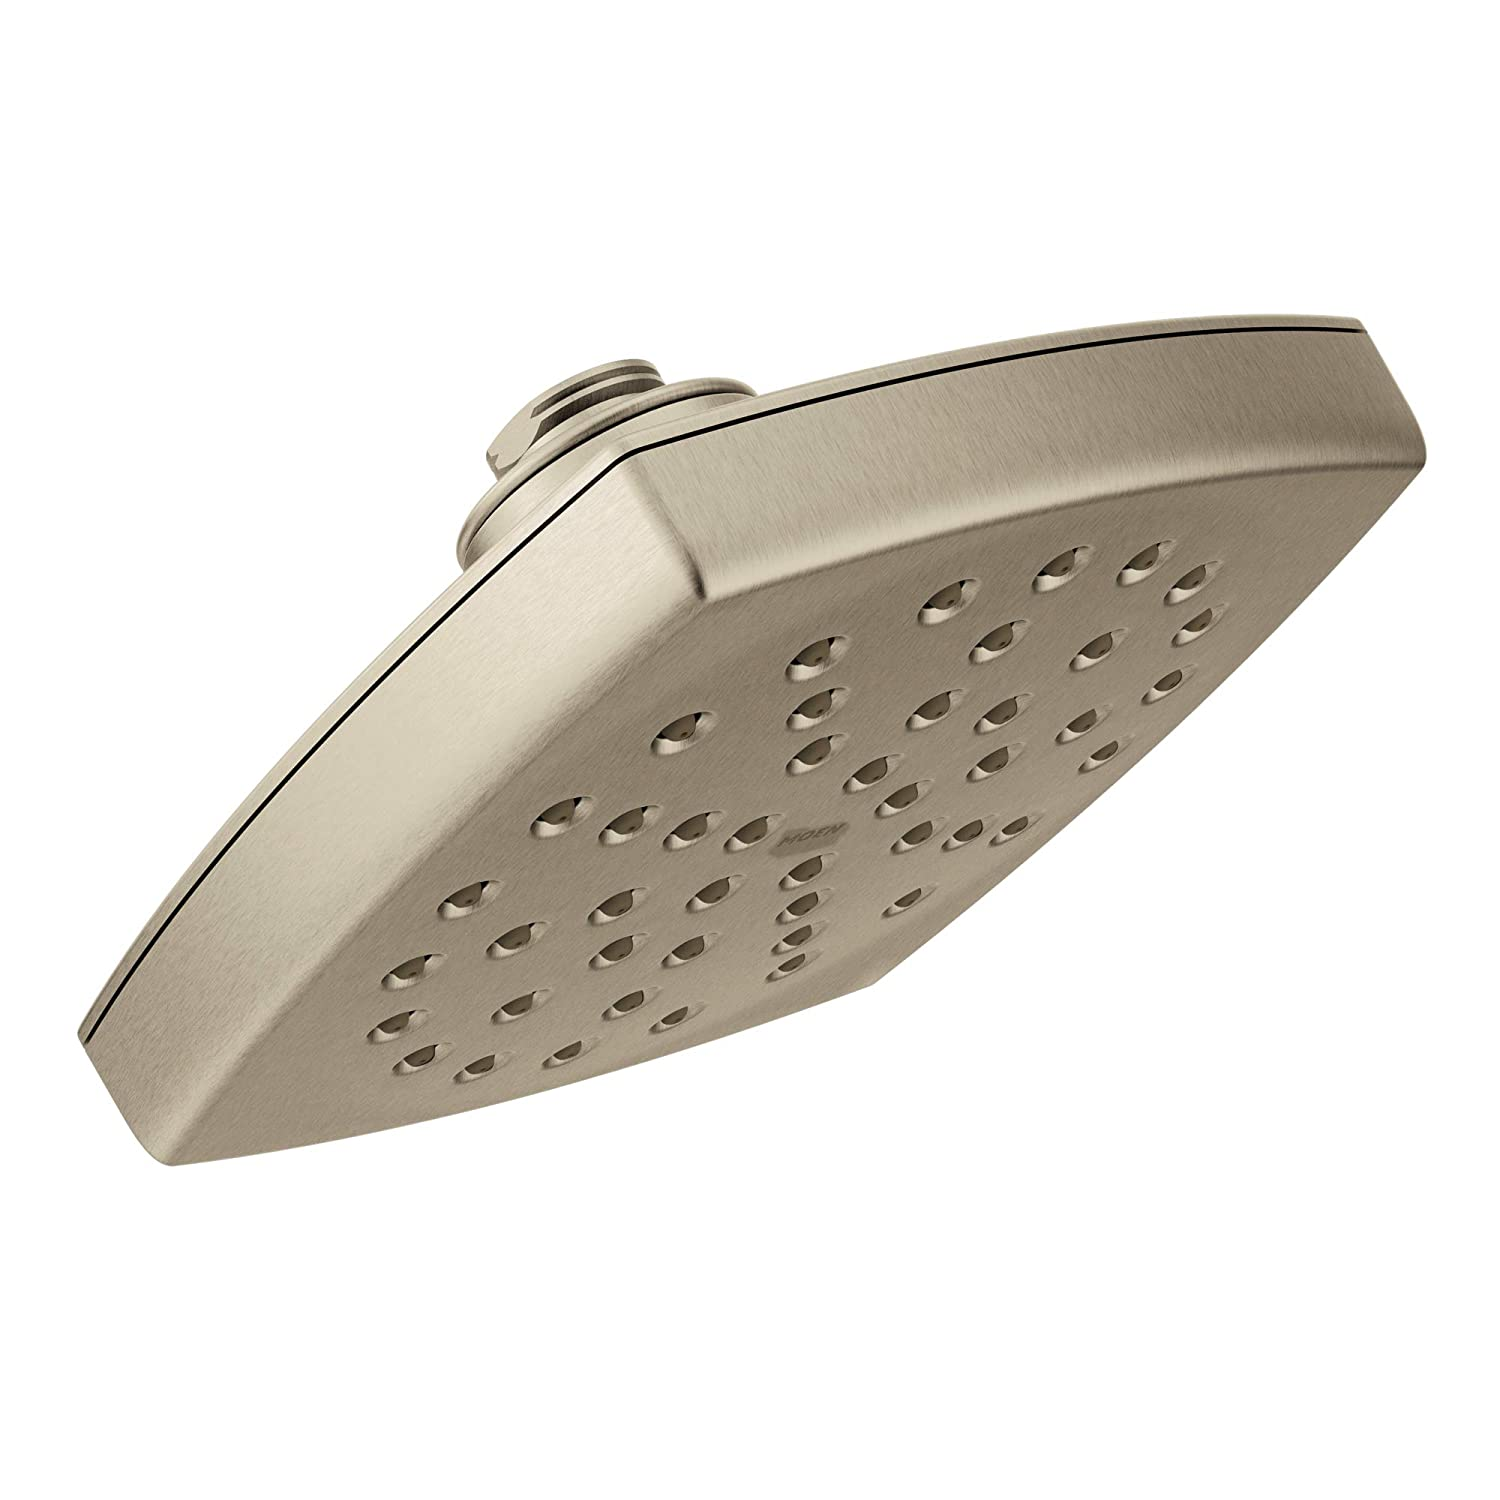 Moen S6365BN Voss 6 Single-Function Rainshower Showerhead with Immersion Technology at 2.5 GPM Flow Rate, Brushed Nickel